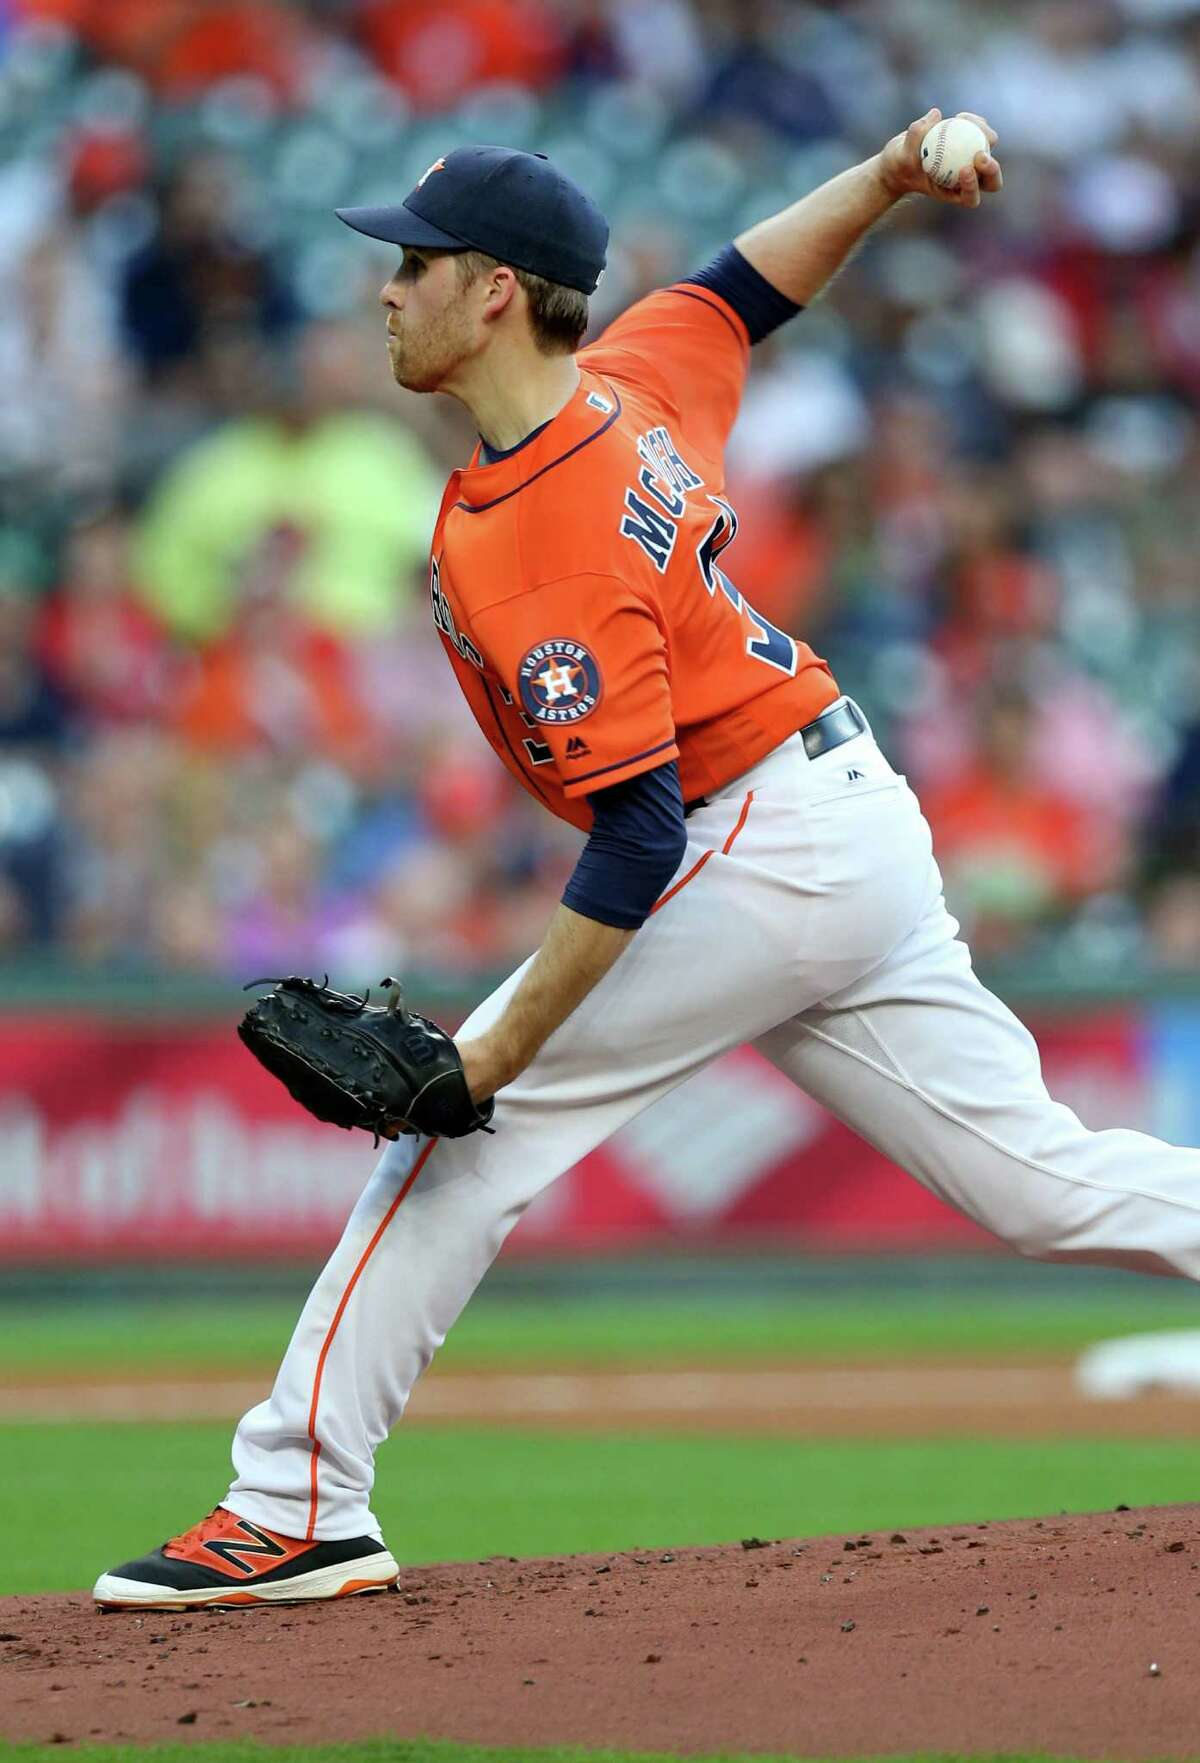 Houston Astros starting pitcher Collin McHugh (31) delivers a pitch agains the Boston Red Sox at Minute Maid Park Friday, April 22, 2016, in Houston, Texas.